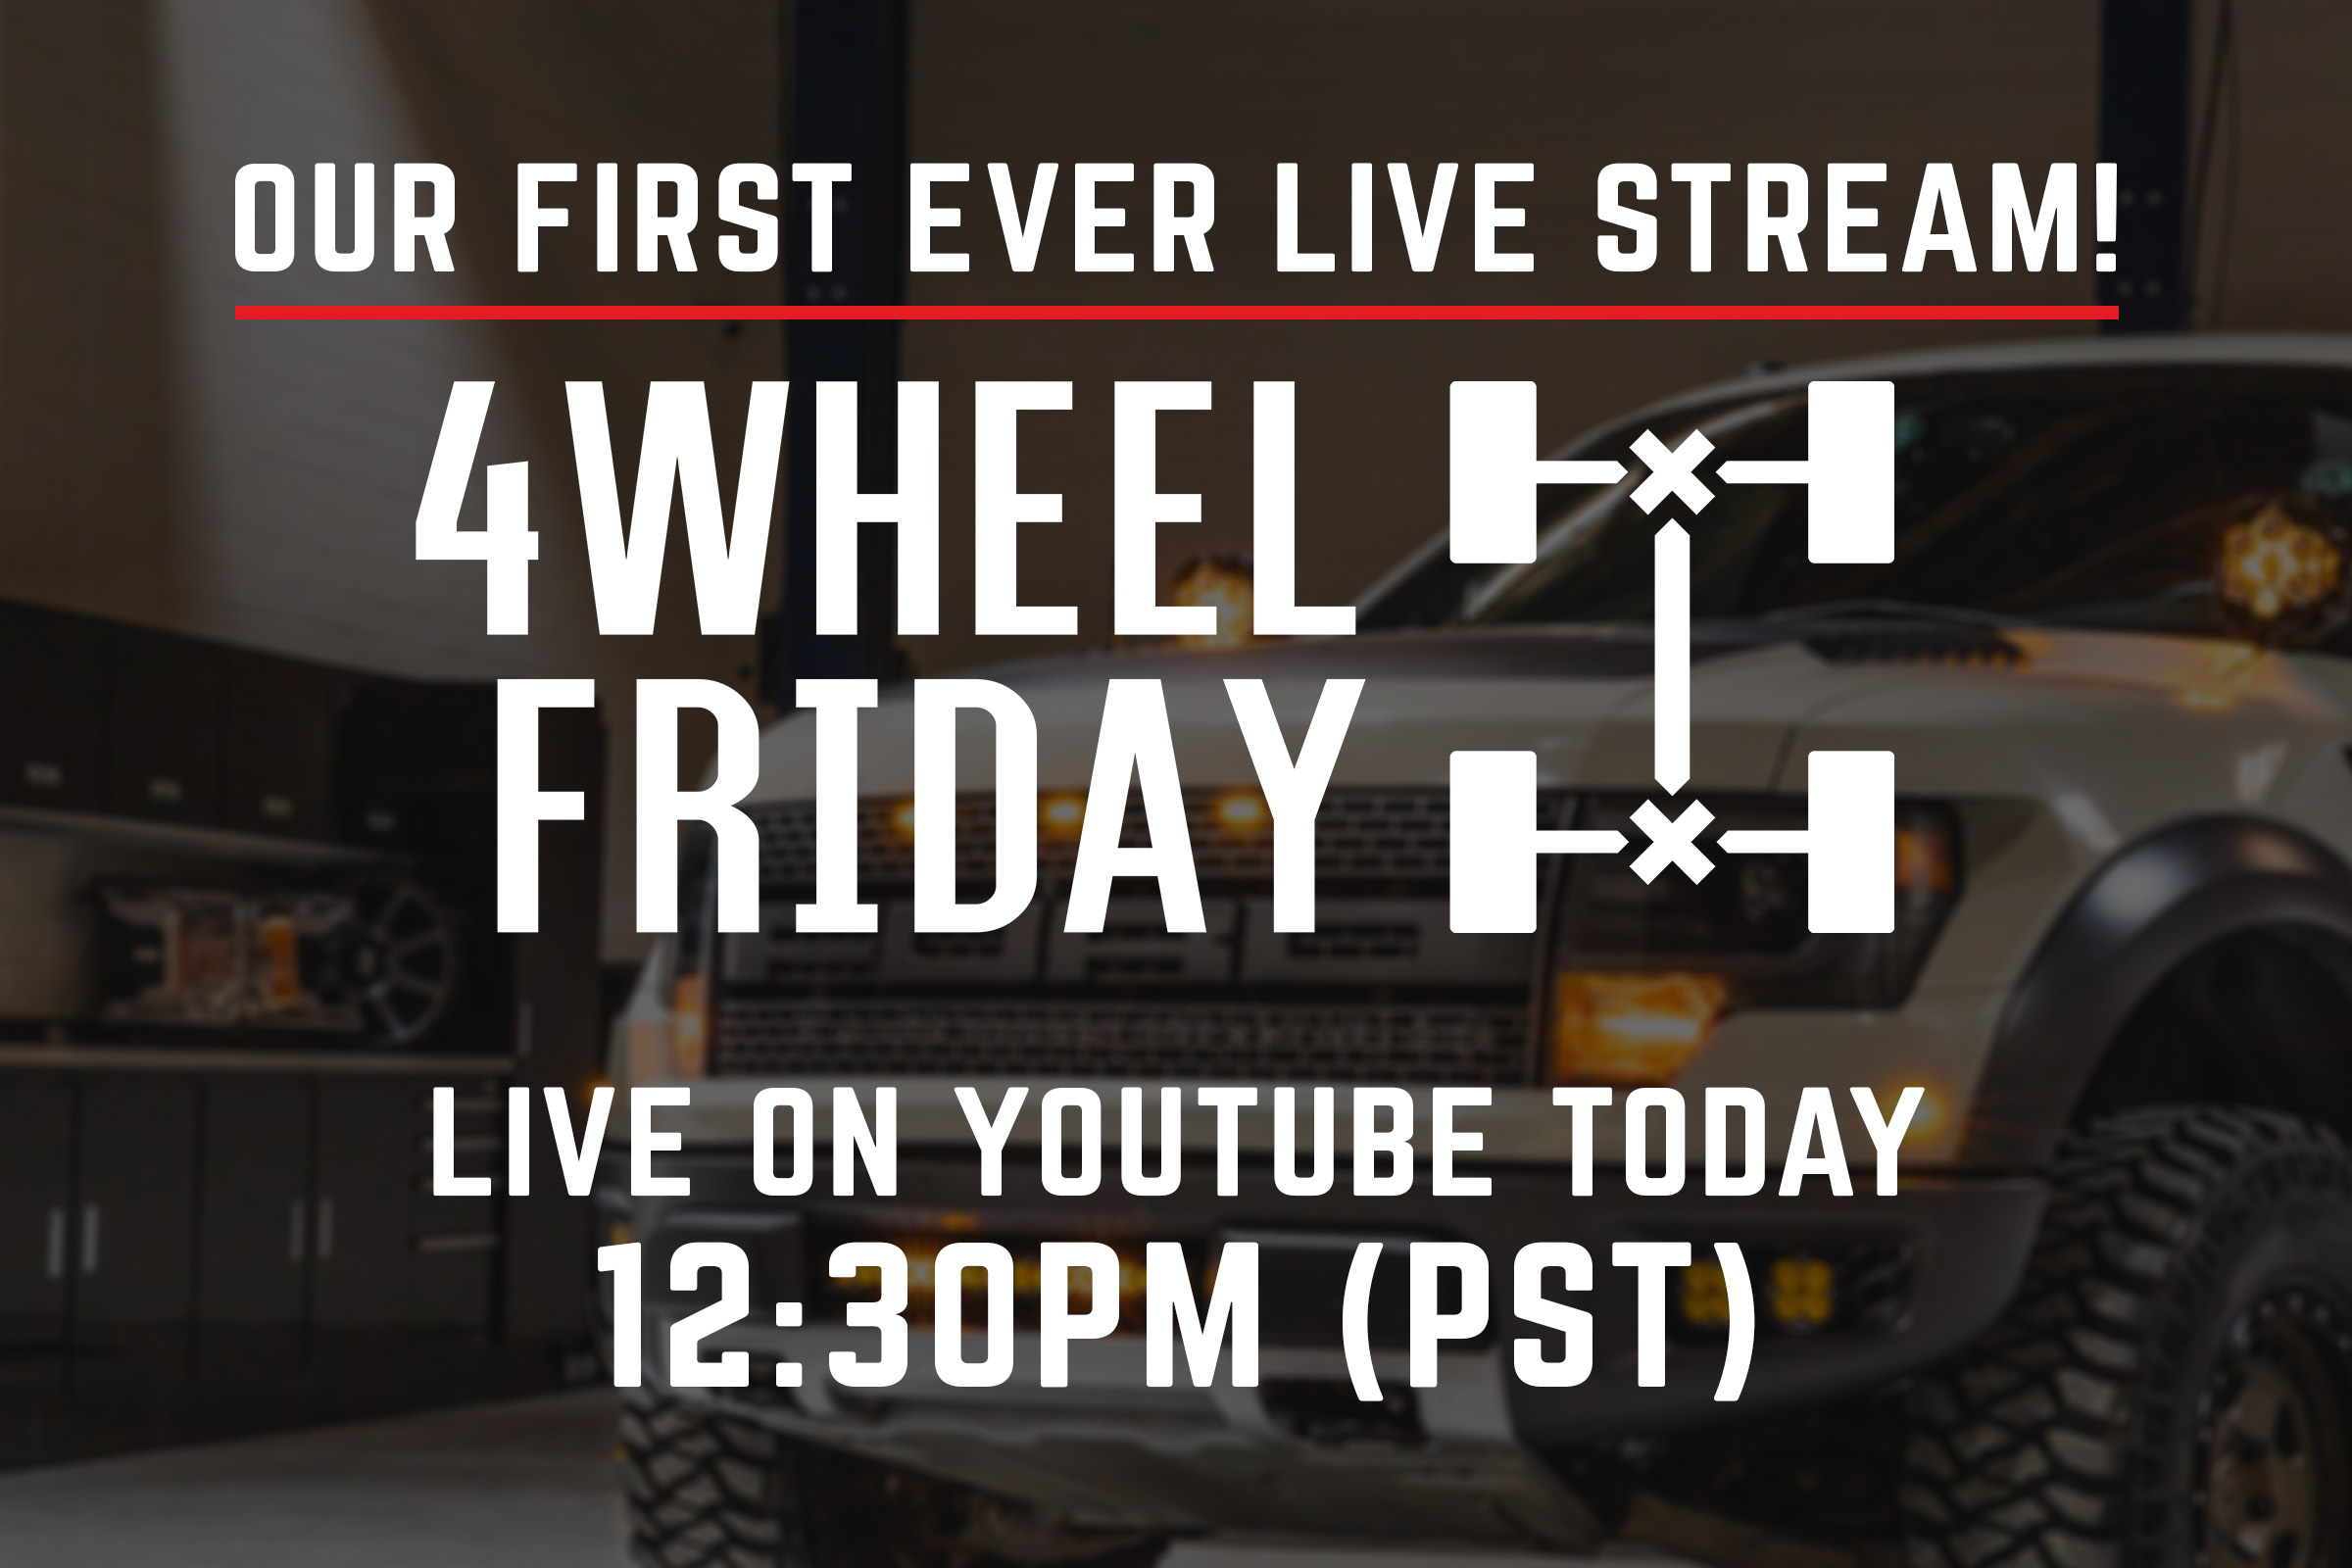 Stage 3's 4Wheel Friday Livestream!